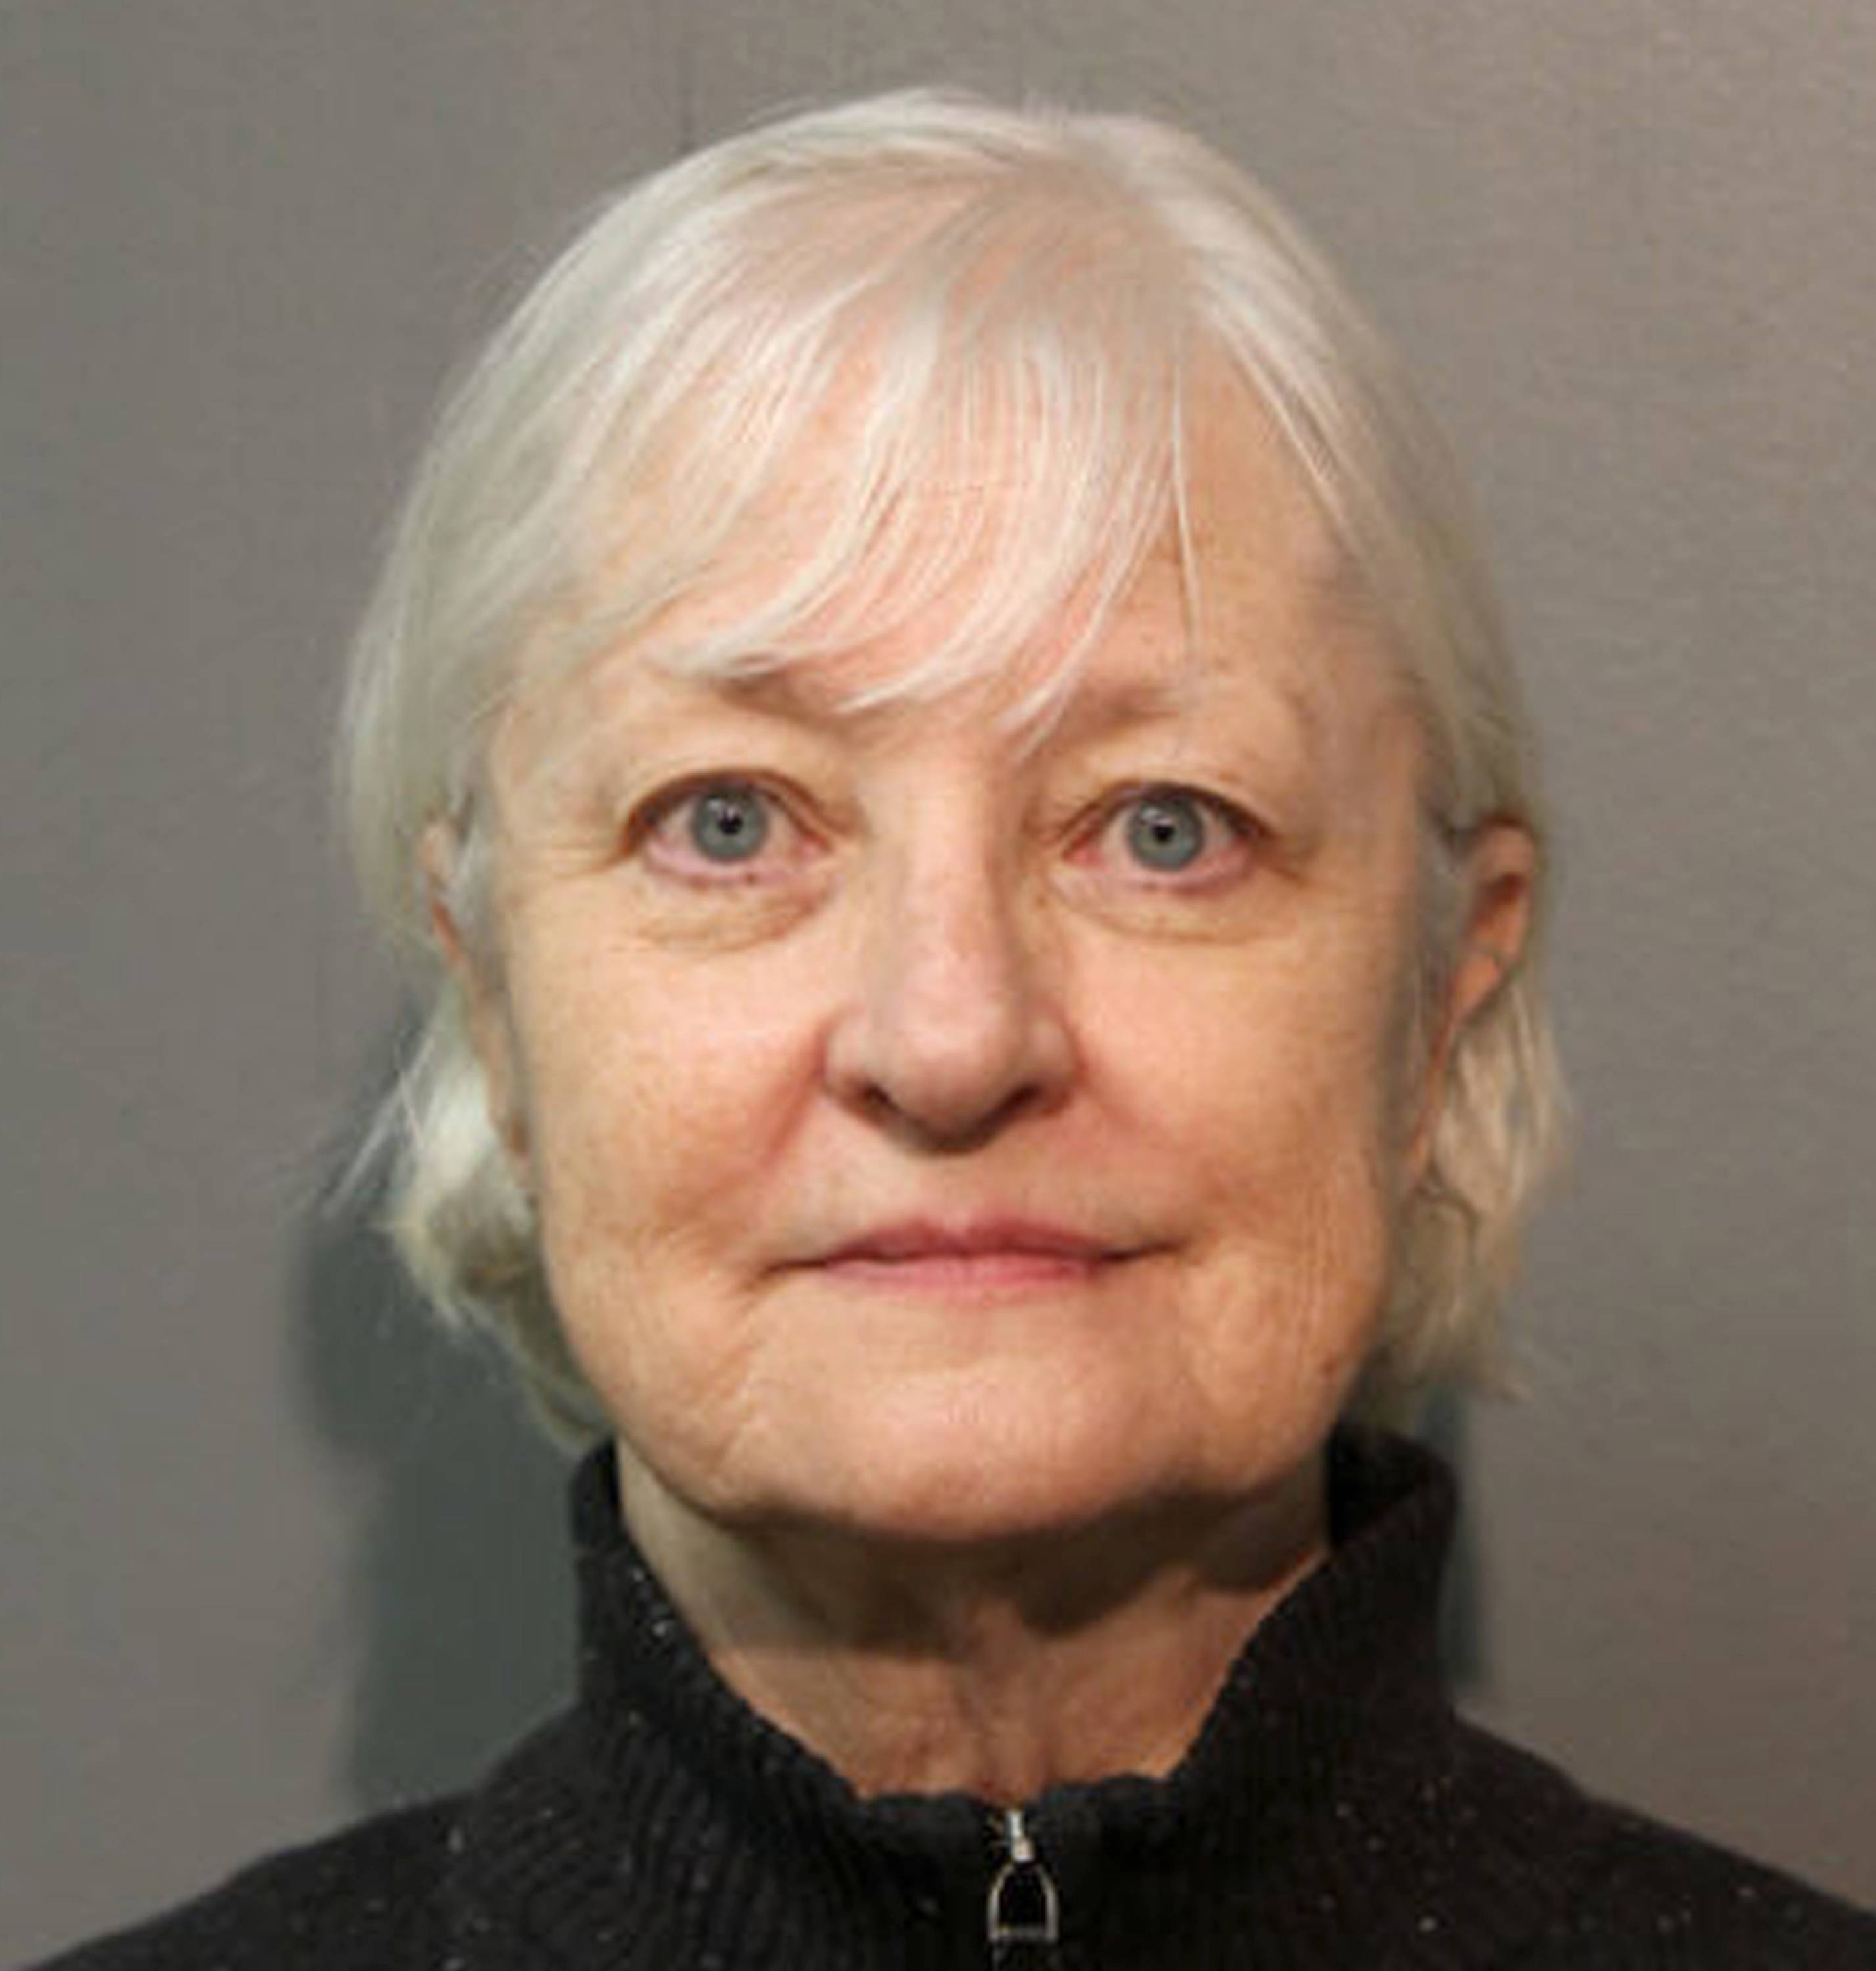 Chicago judge orders serial stowaway's release from jail